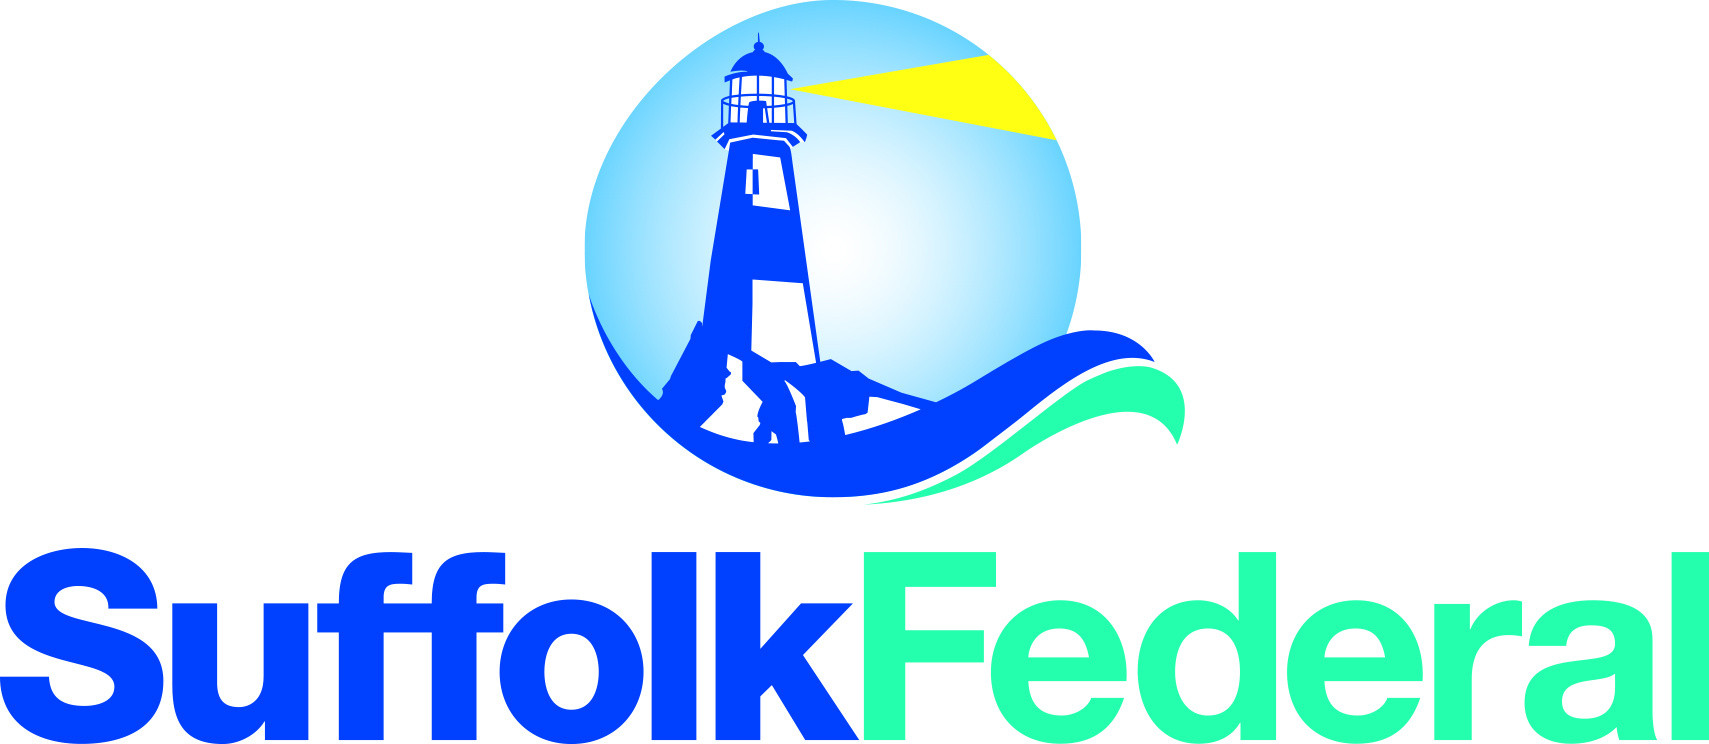 SuffolkFederal_VertLogo_4Color.jpg